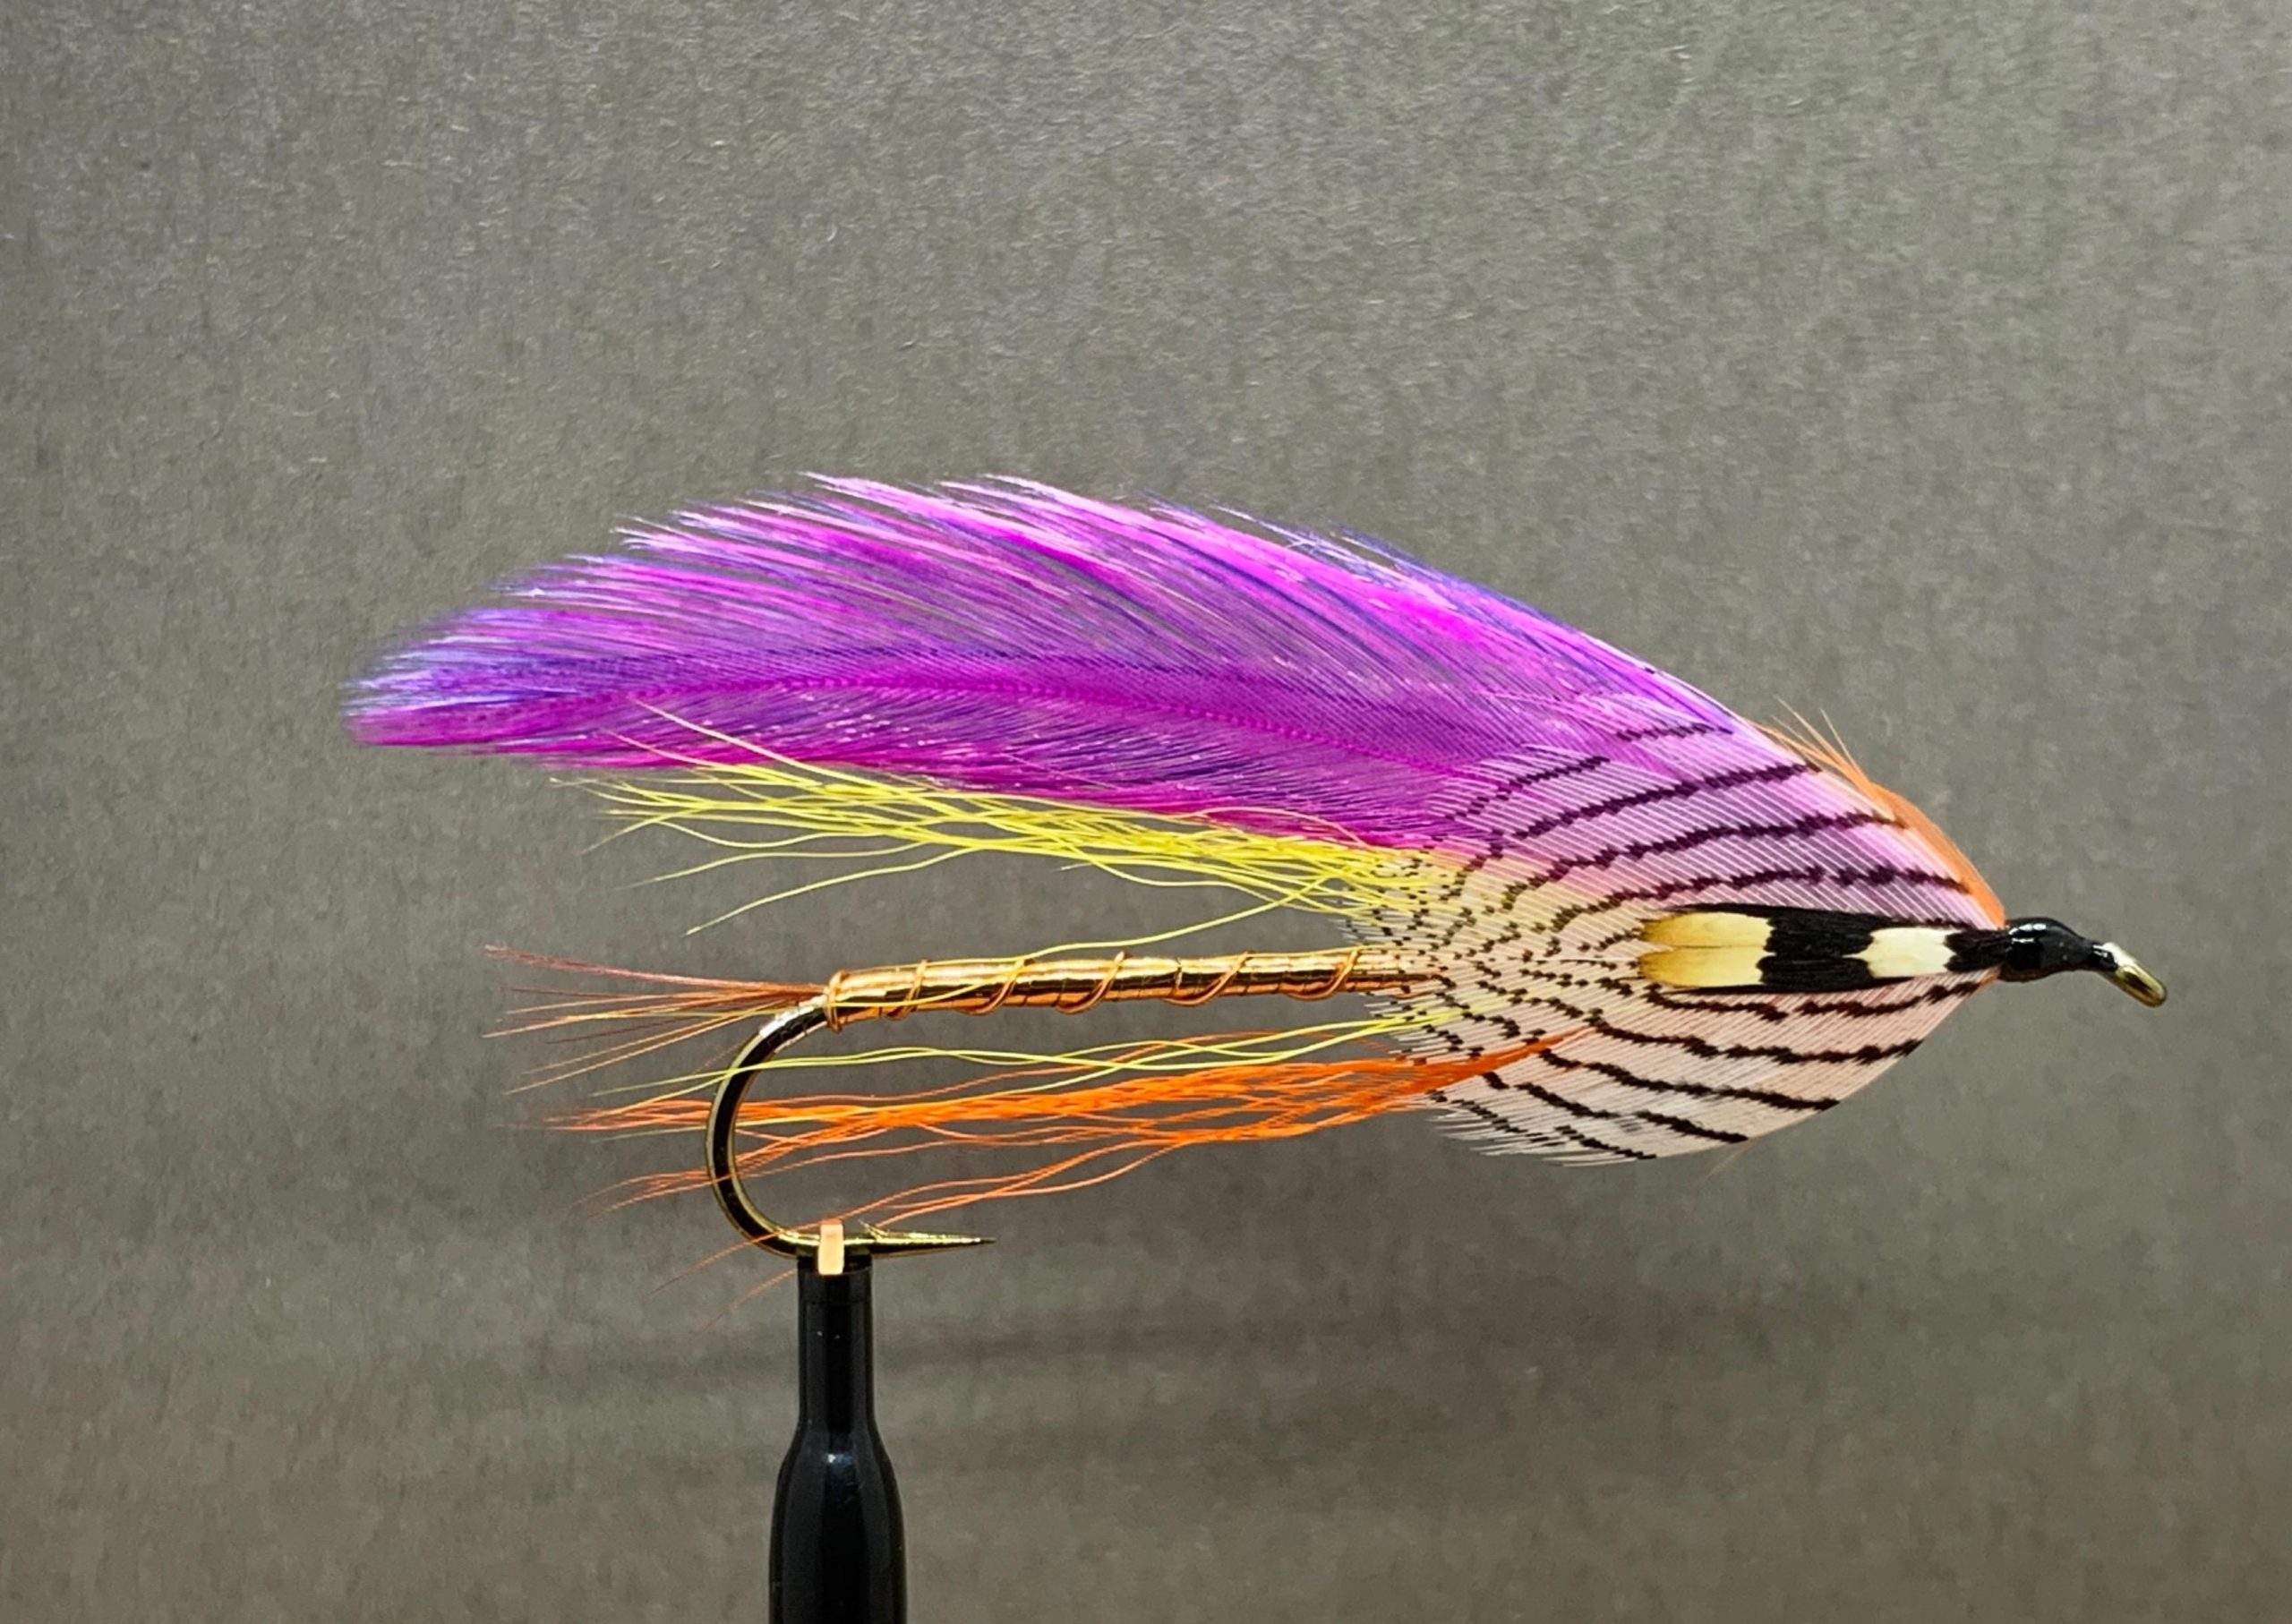 Indian Puddle Streamer an Ed Bendl and Mike Martinek Pattern